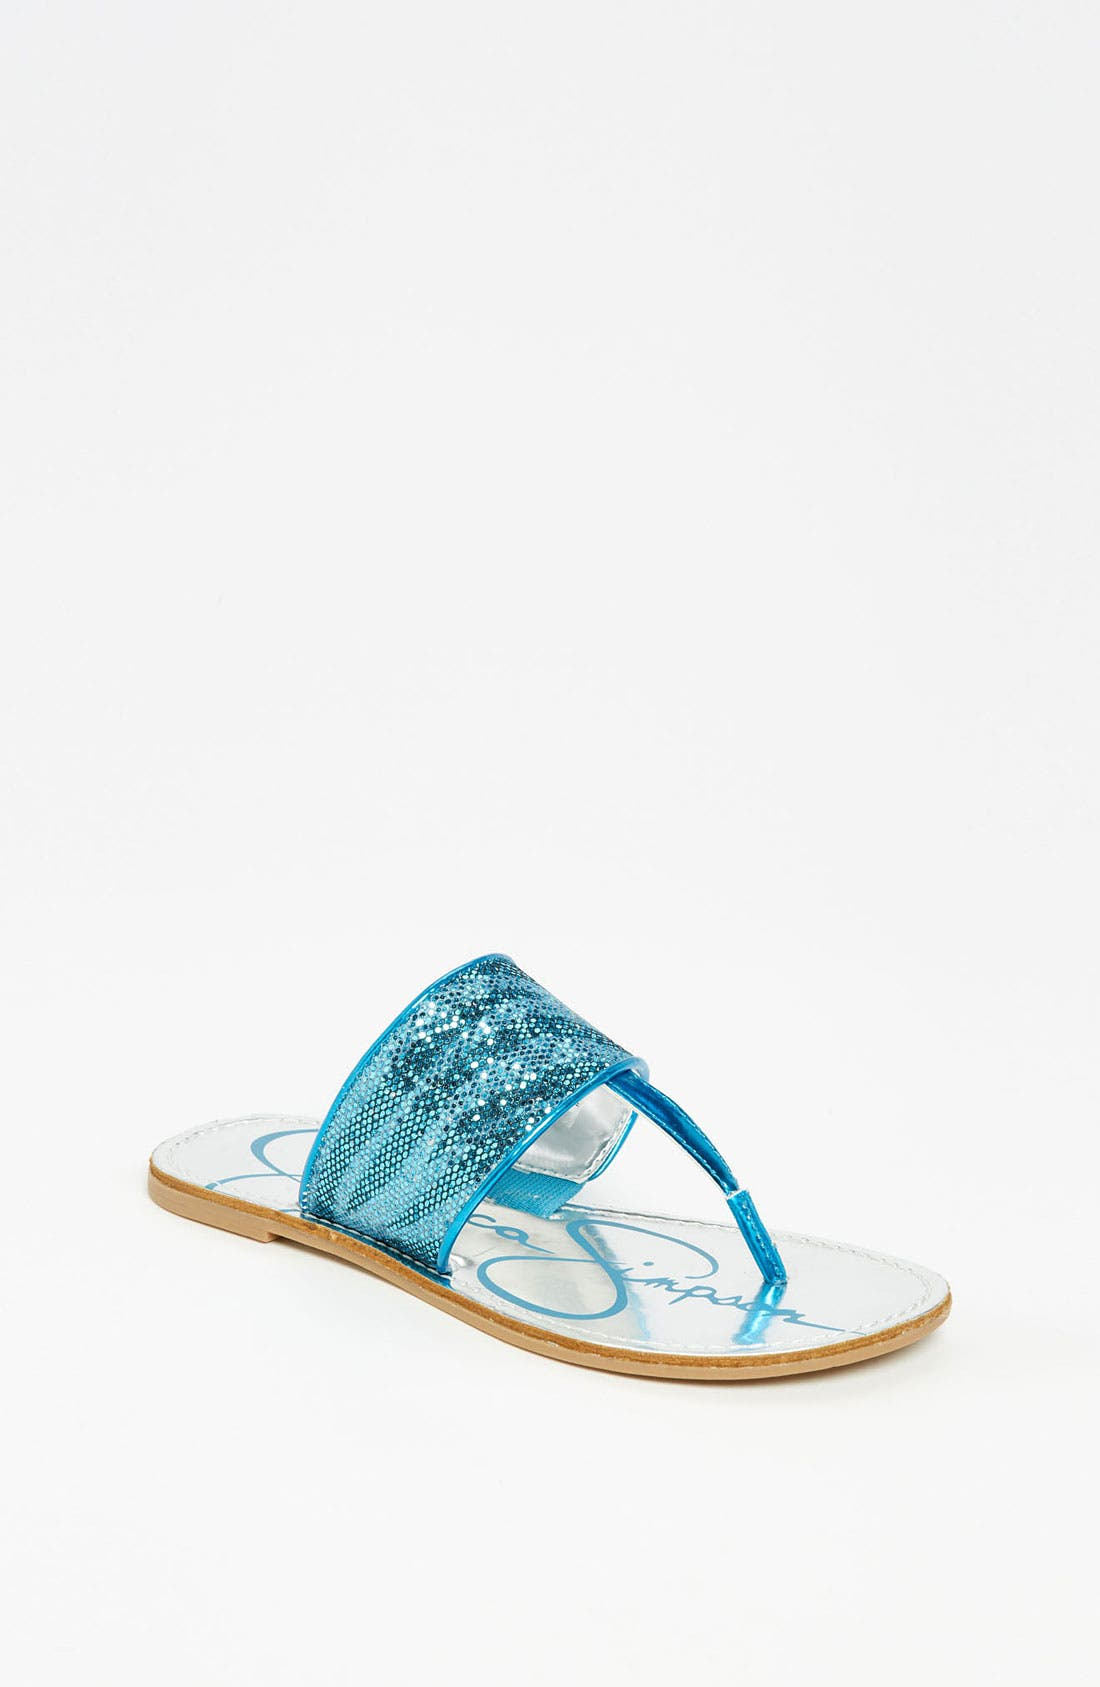 Main Image - Jessica Simpson 'Millie' Sandal (Toddler, Little Kid & Big Kid)